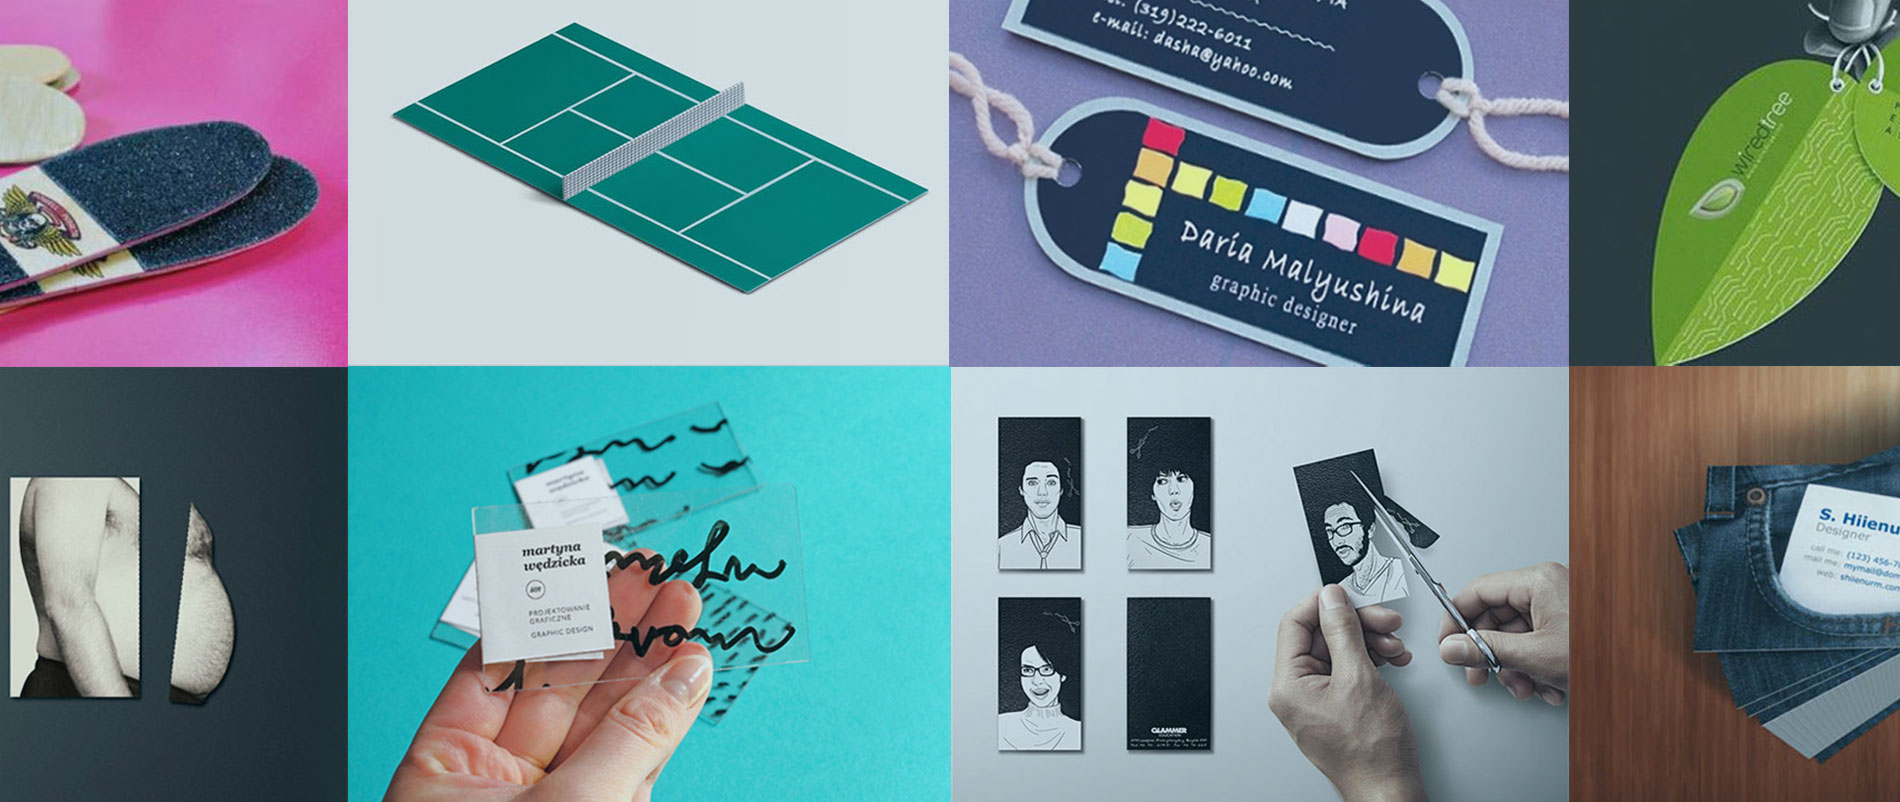 50 Business Cards That Are Way Too Creative To Ever Throw Away ...